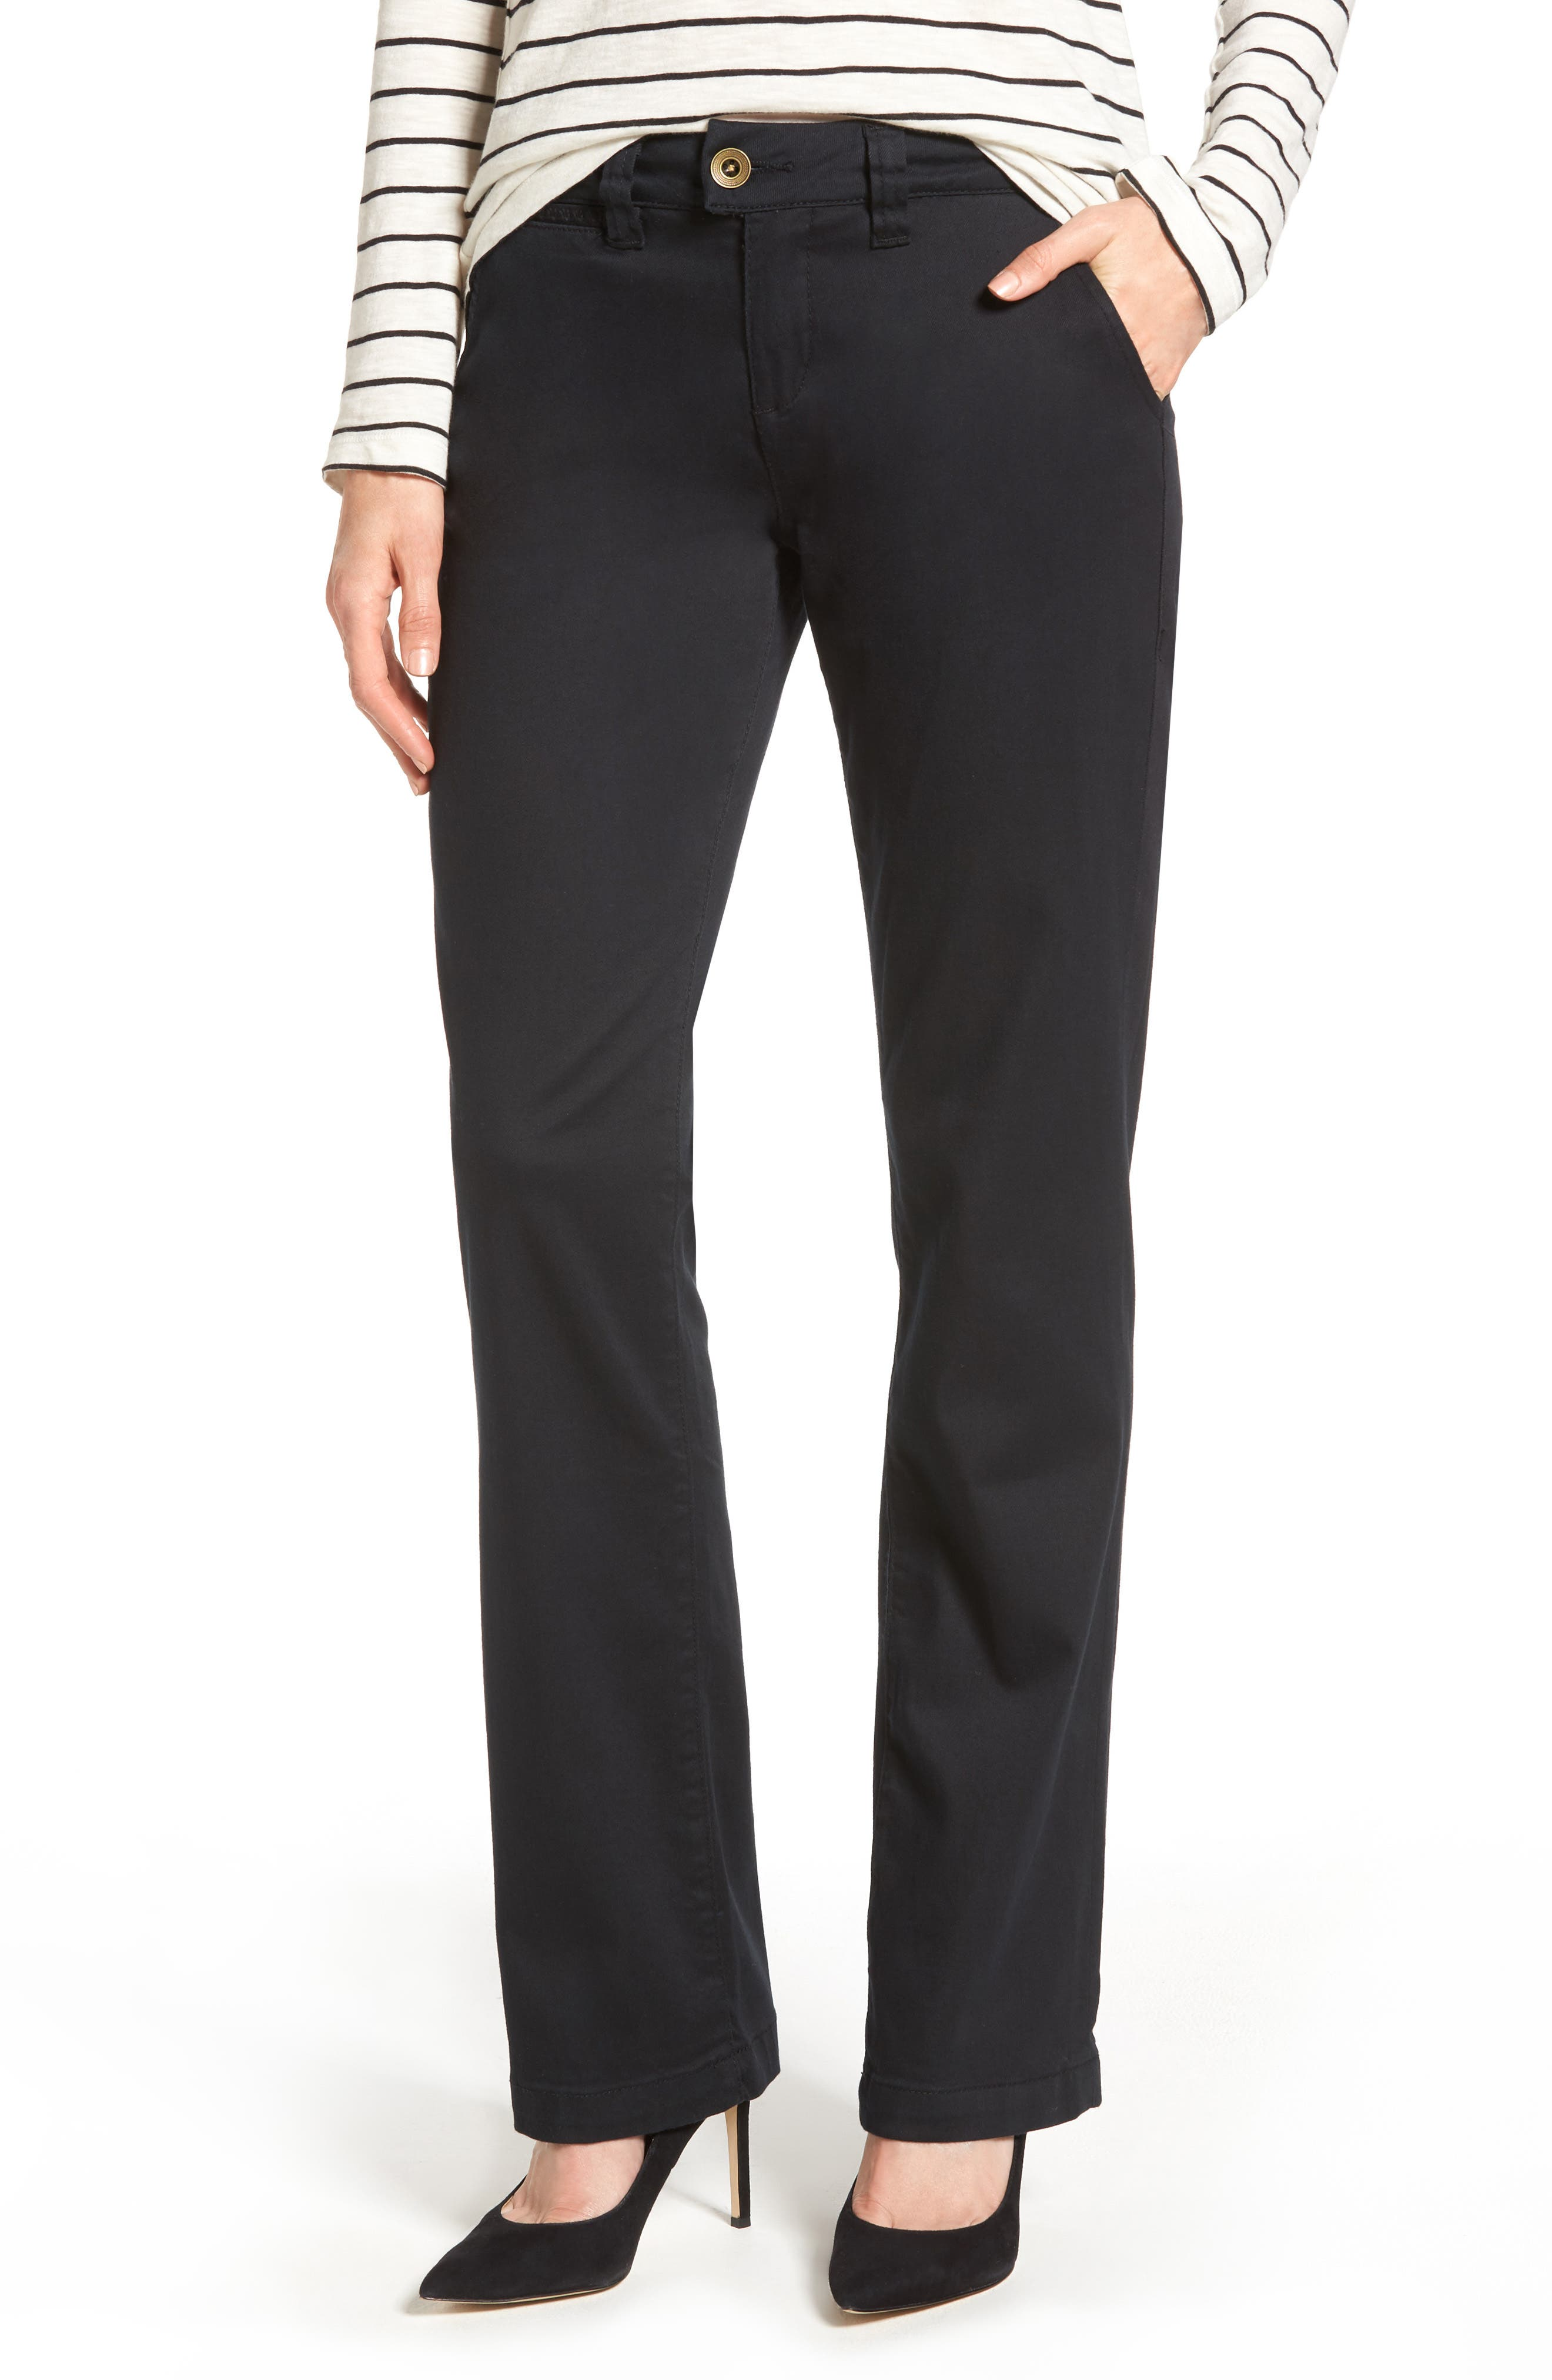 Main Image - Jag Jeans Standard Stretch Twill Trousers (Regular & Petite)